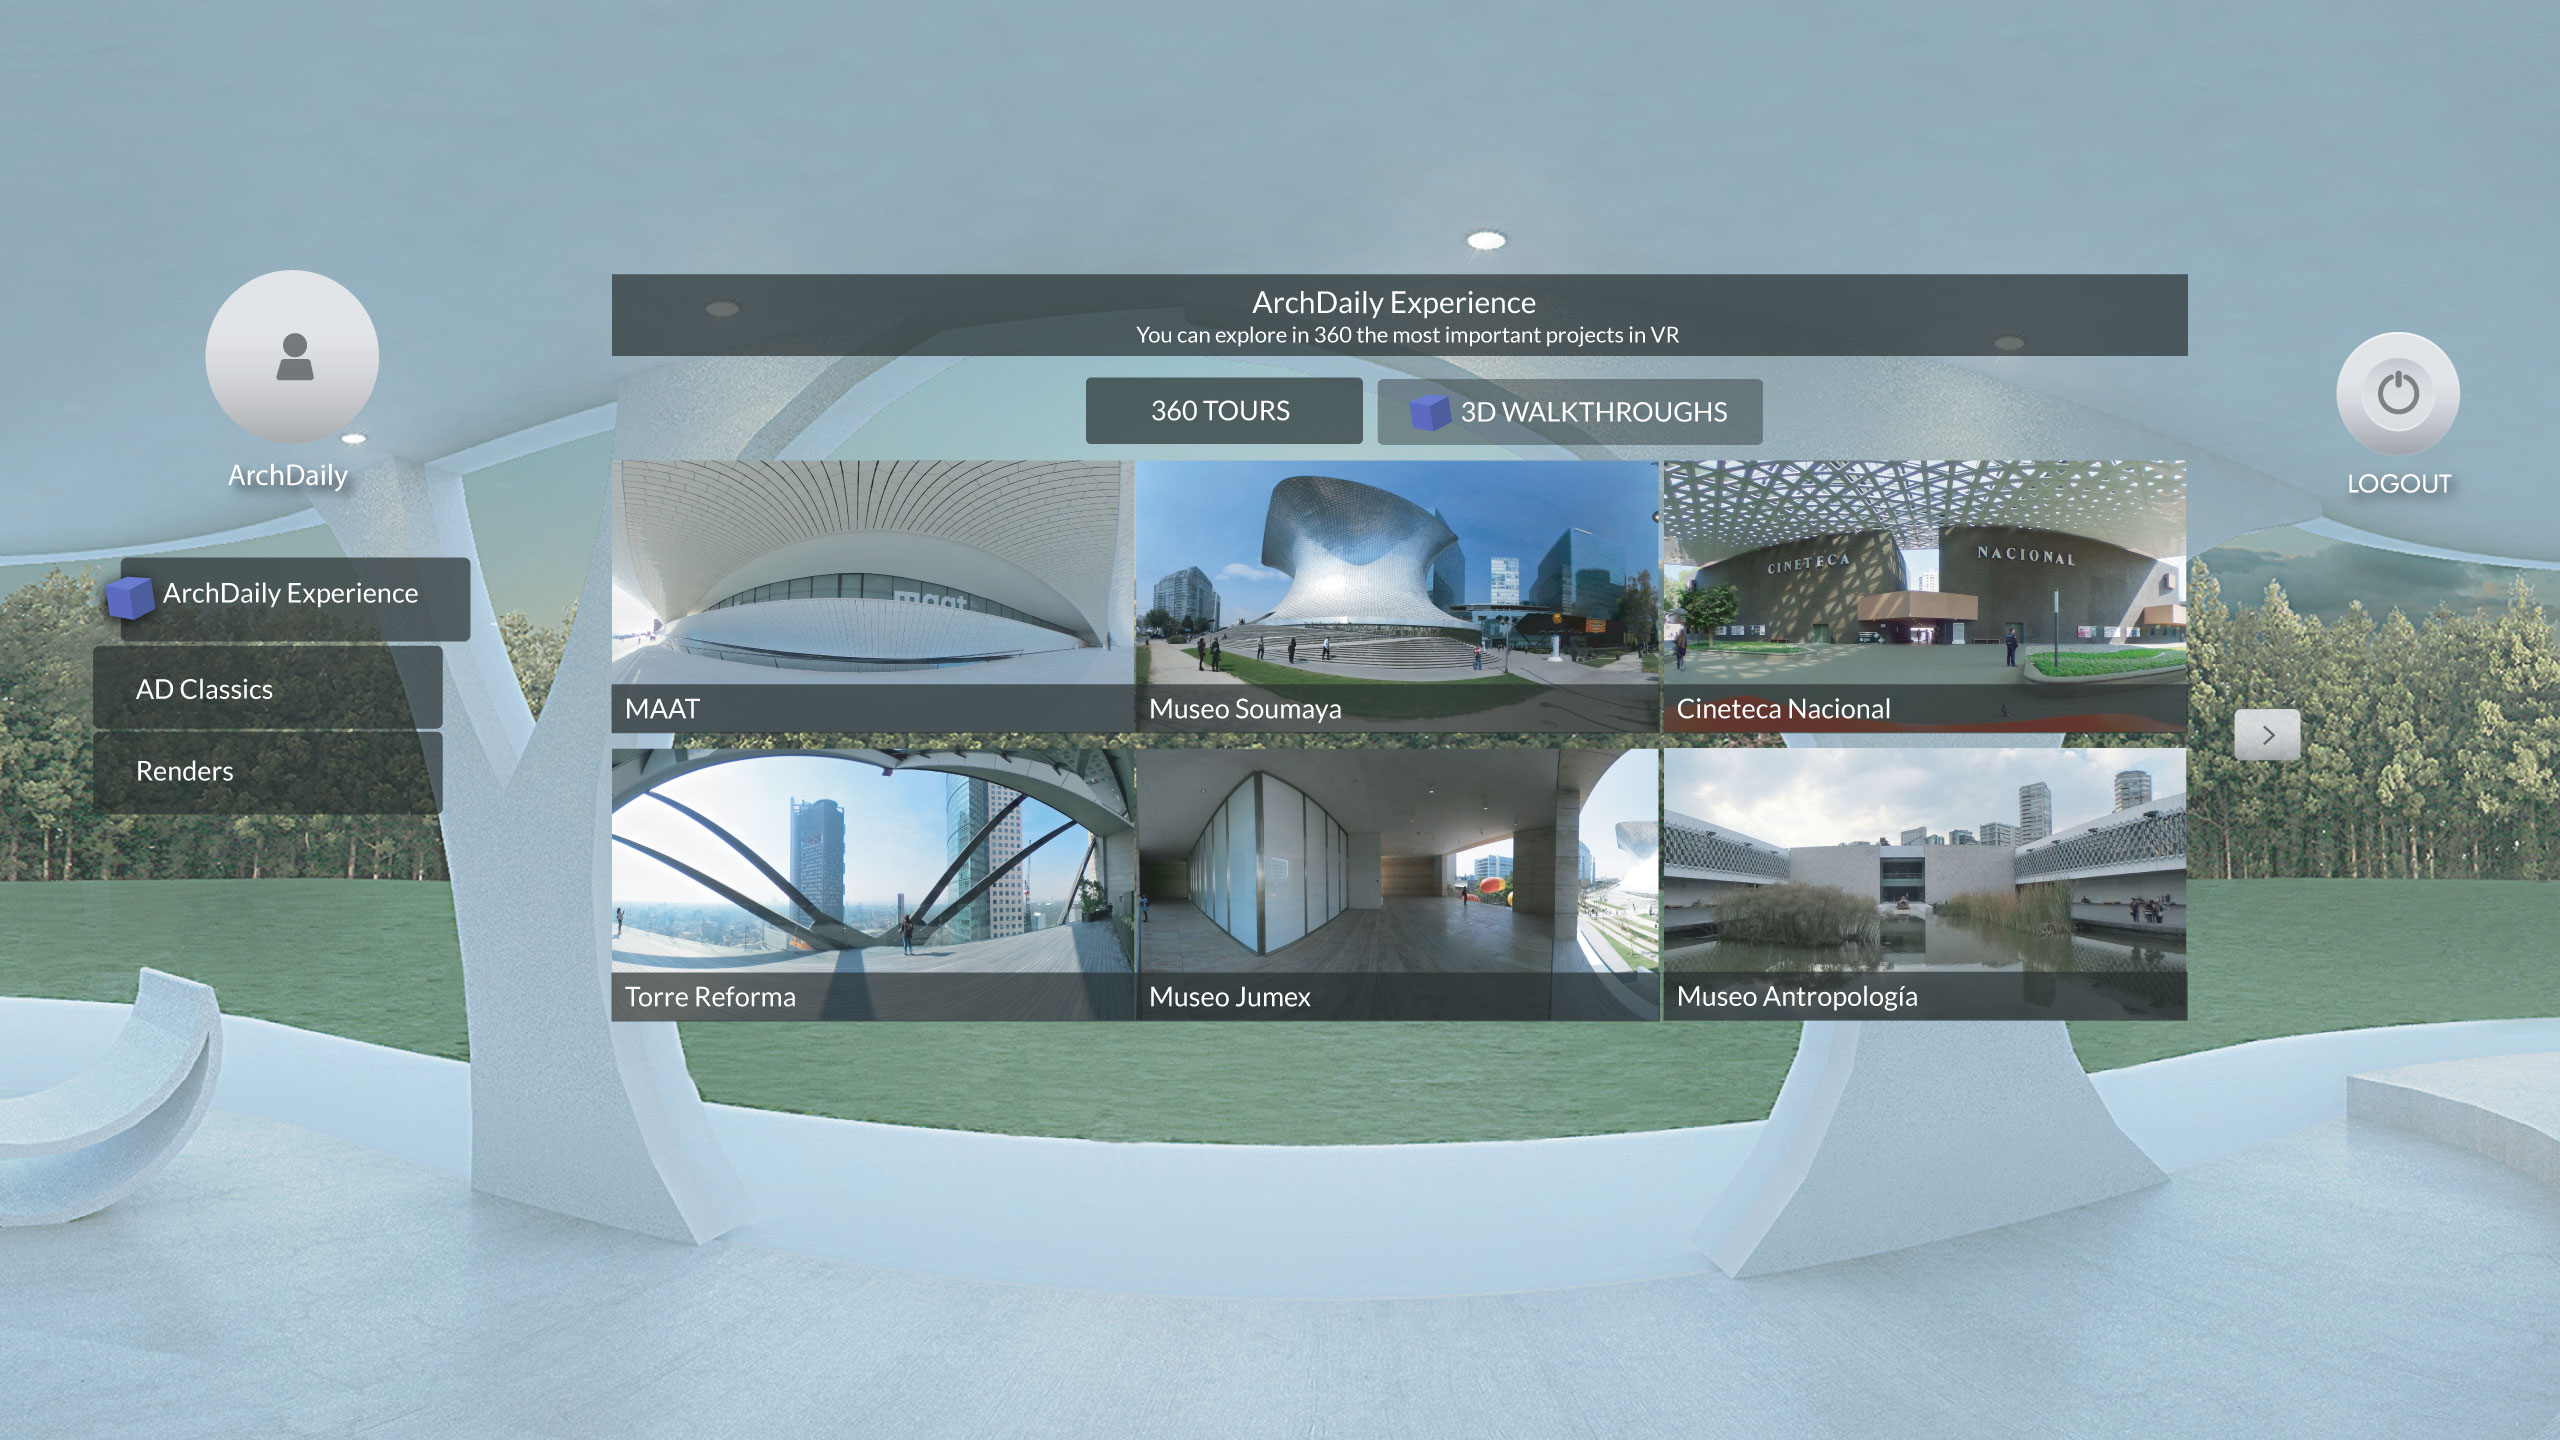 Interface to select Projects, 360 Tours and 3D Walkthroughs uploaded to your account